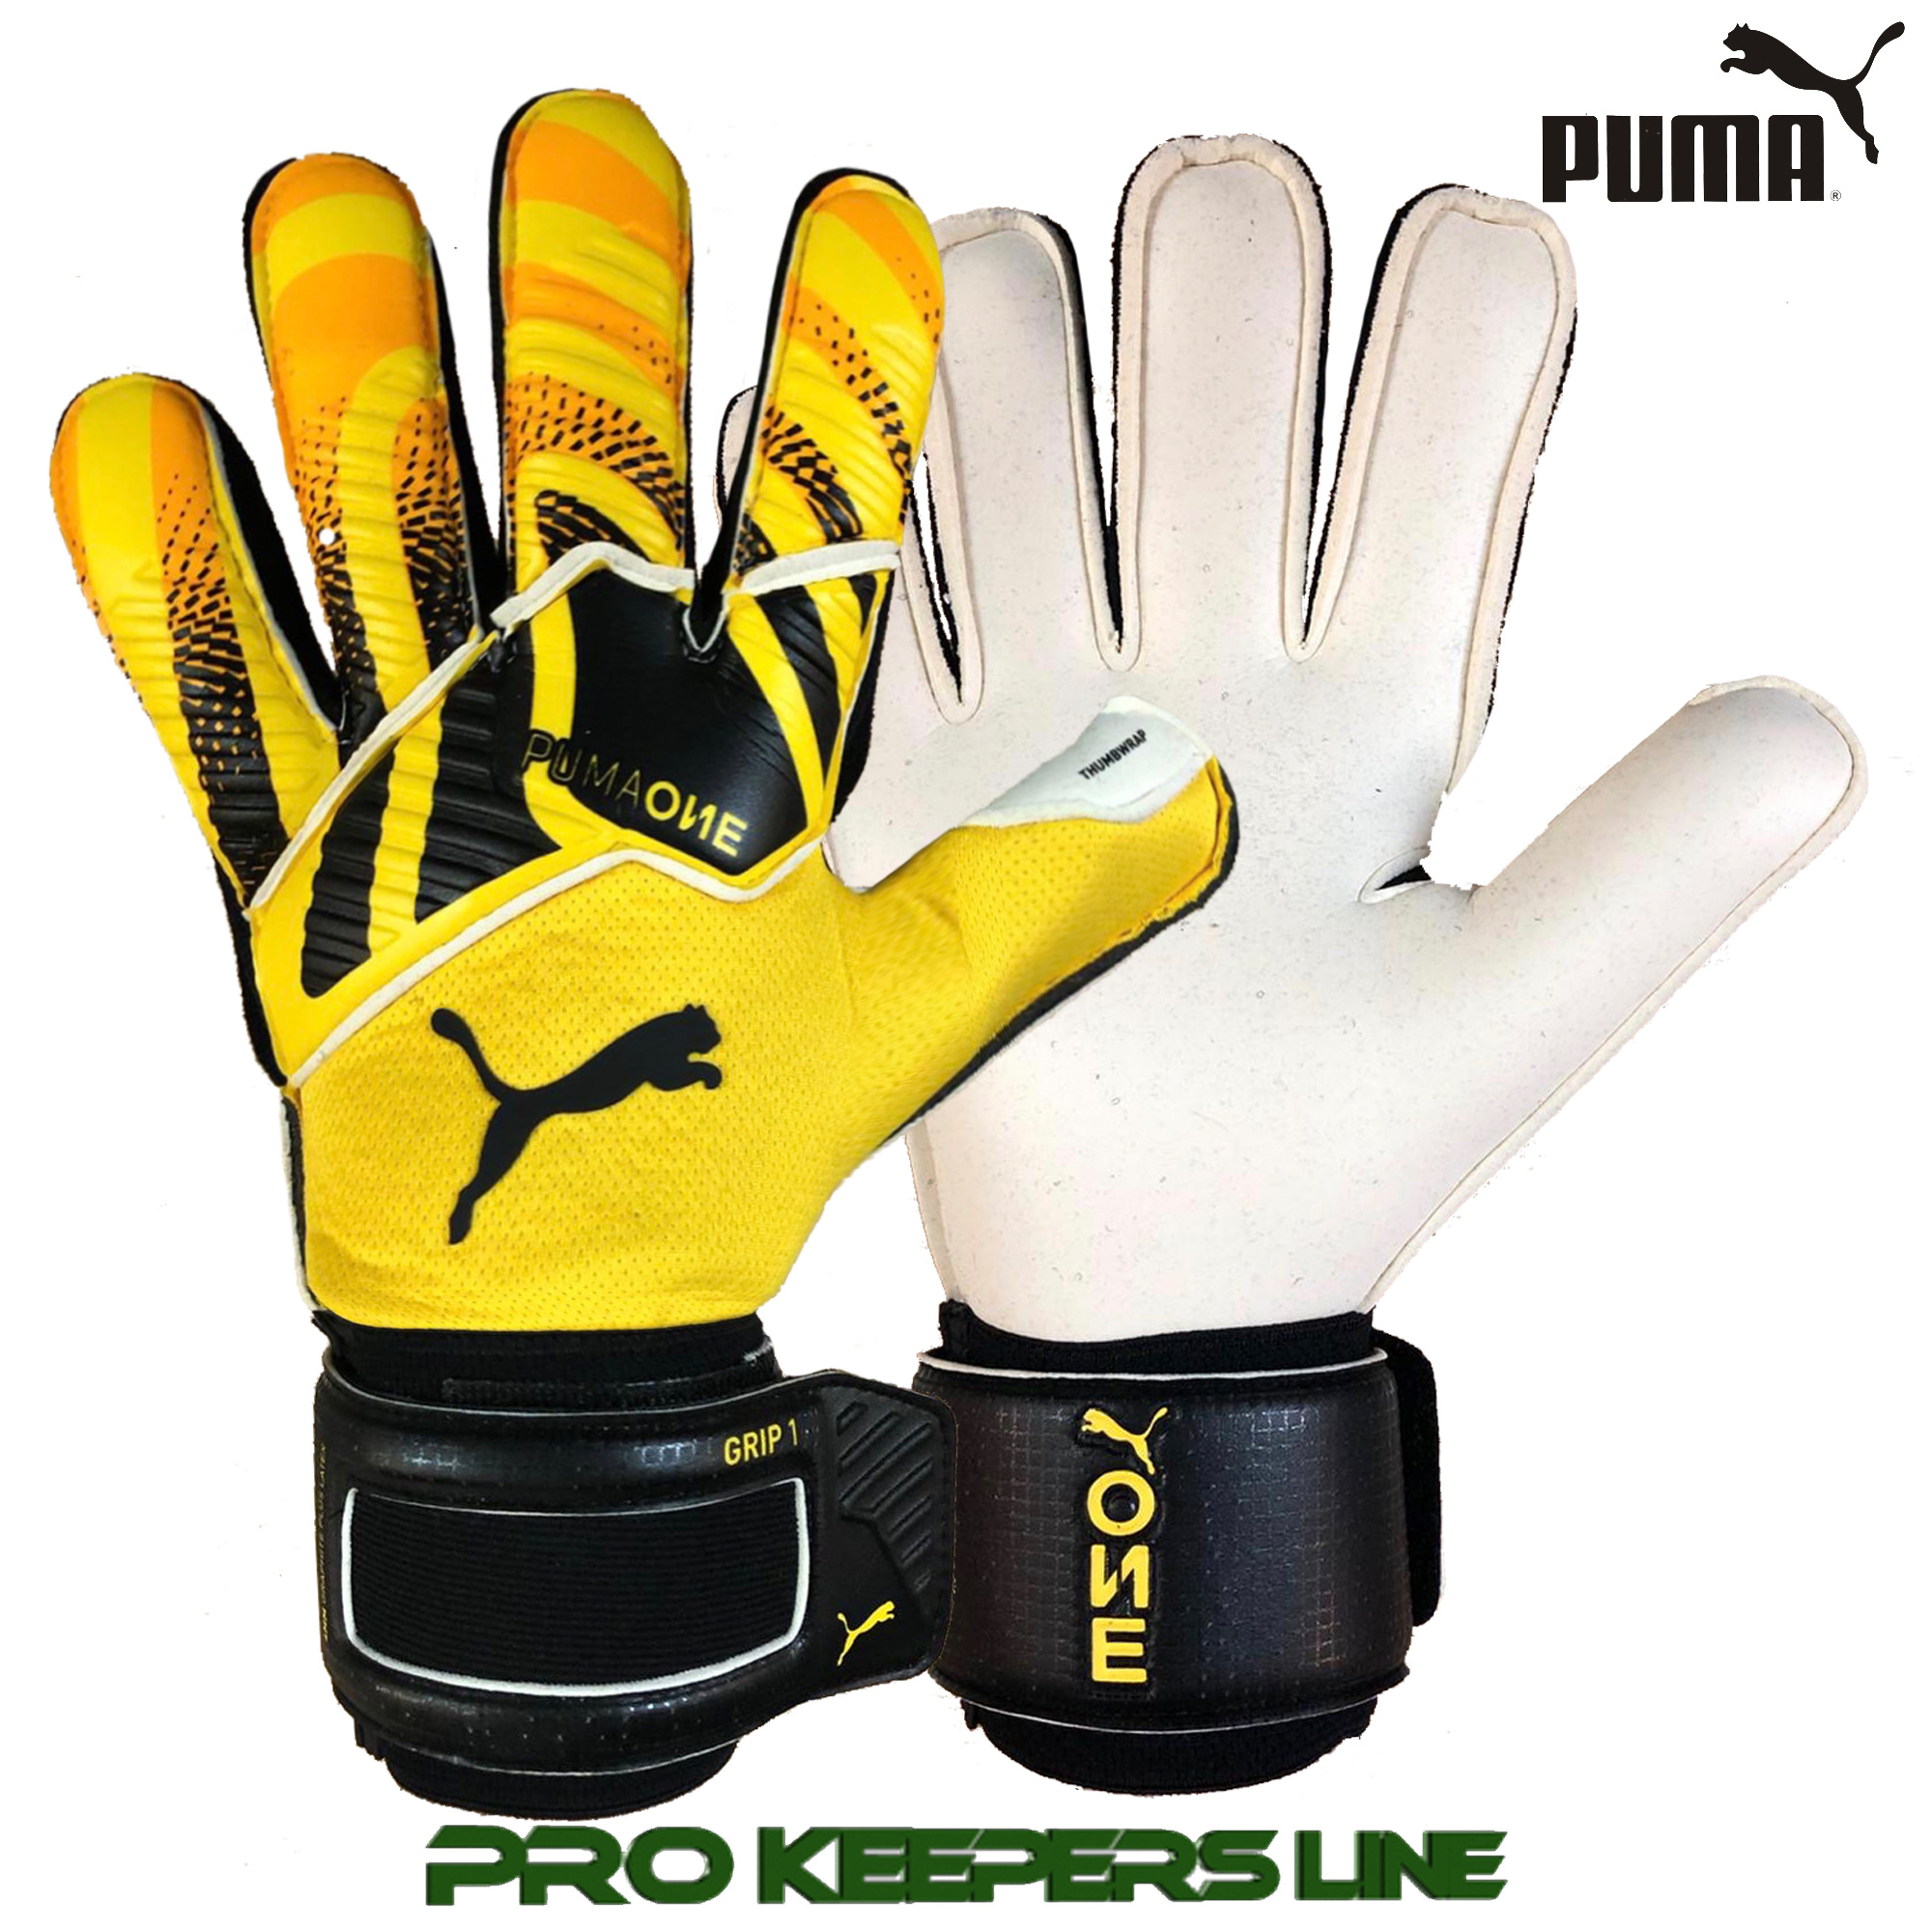 Intuición Preciso madre  PUMA ONE GRIP 1 RC ULTRA YELLOW/BLACK - Pro Keepers Line